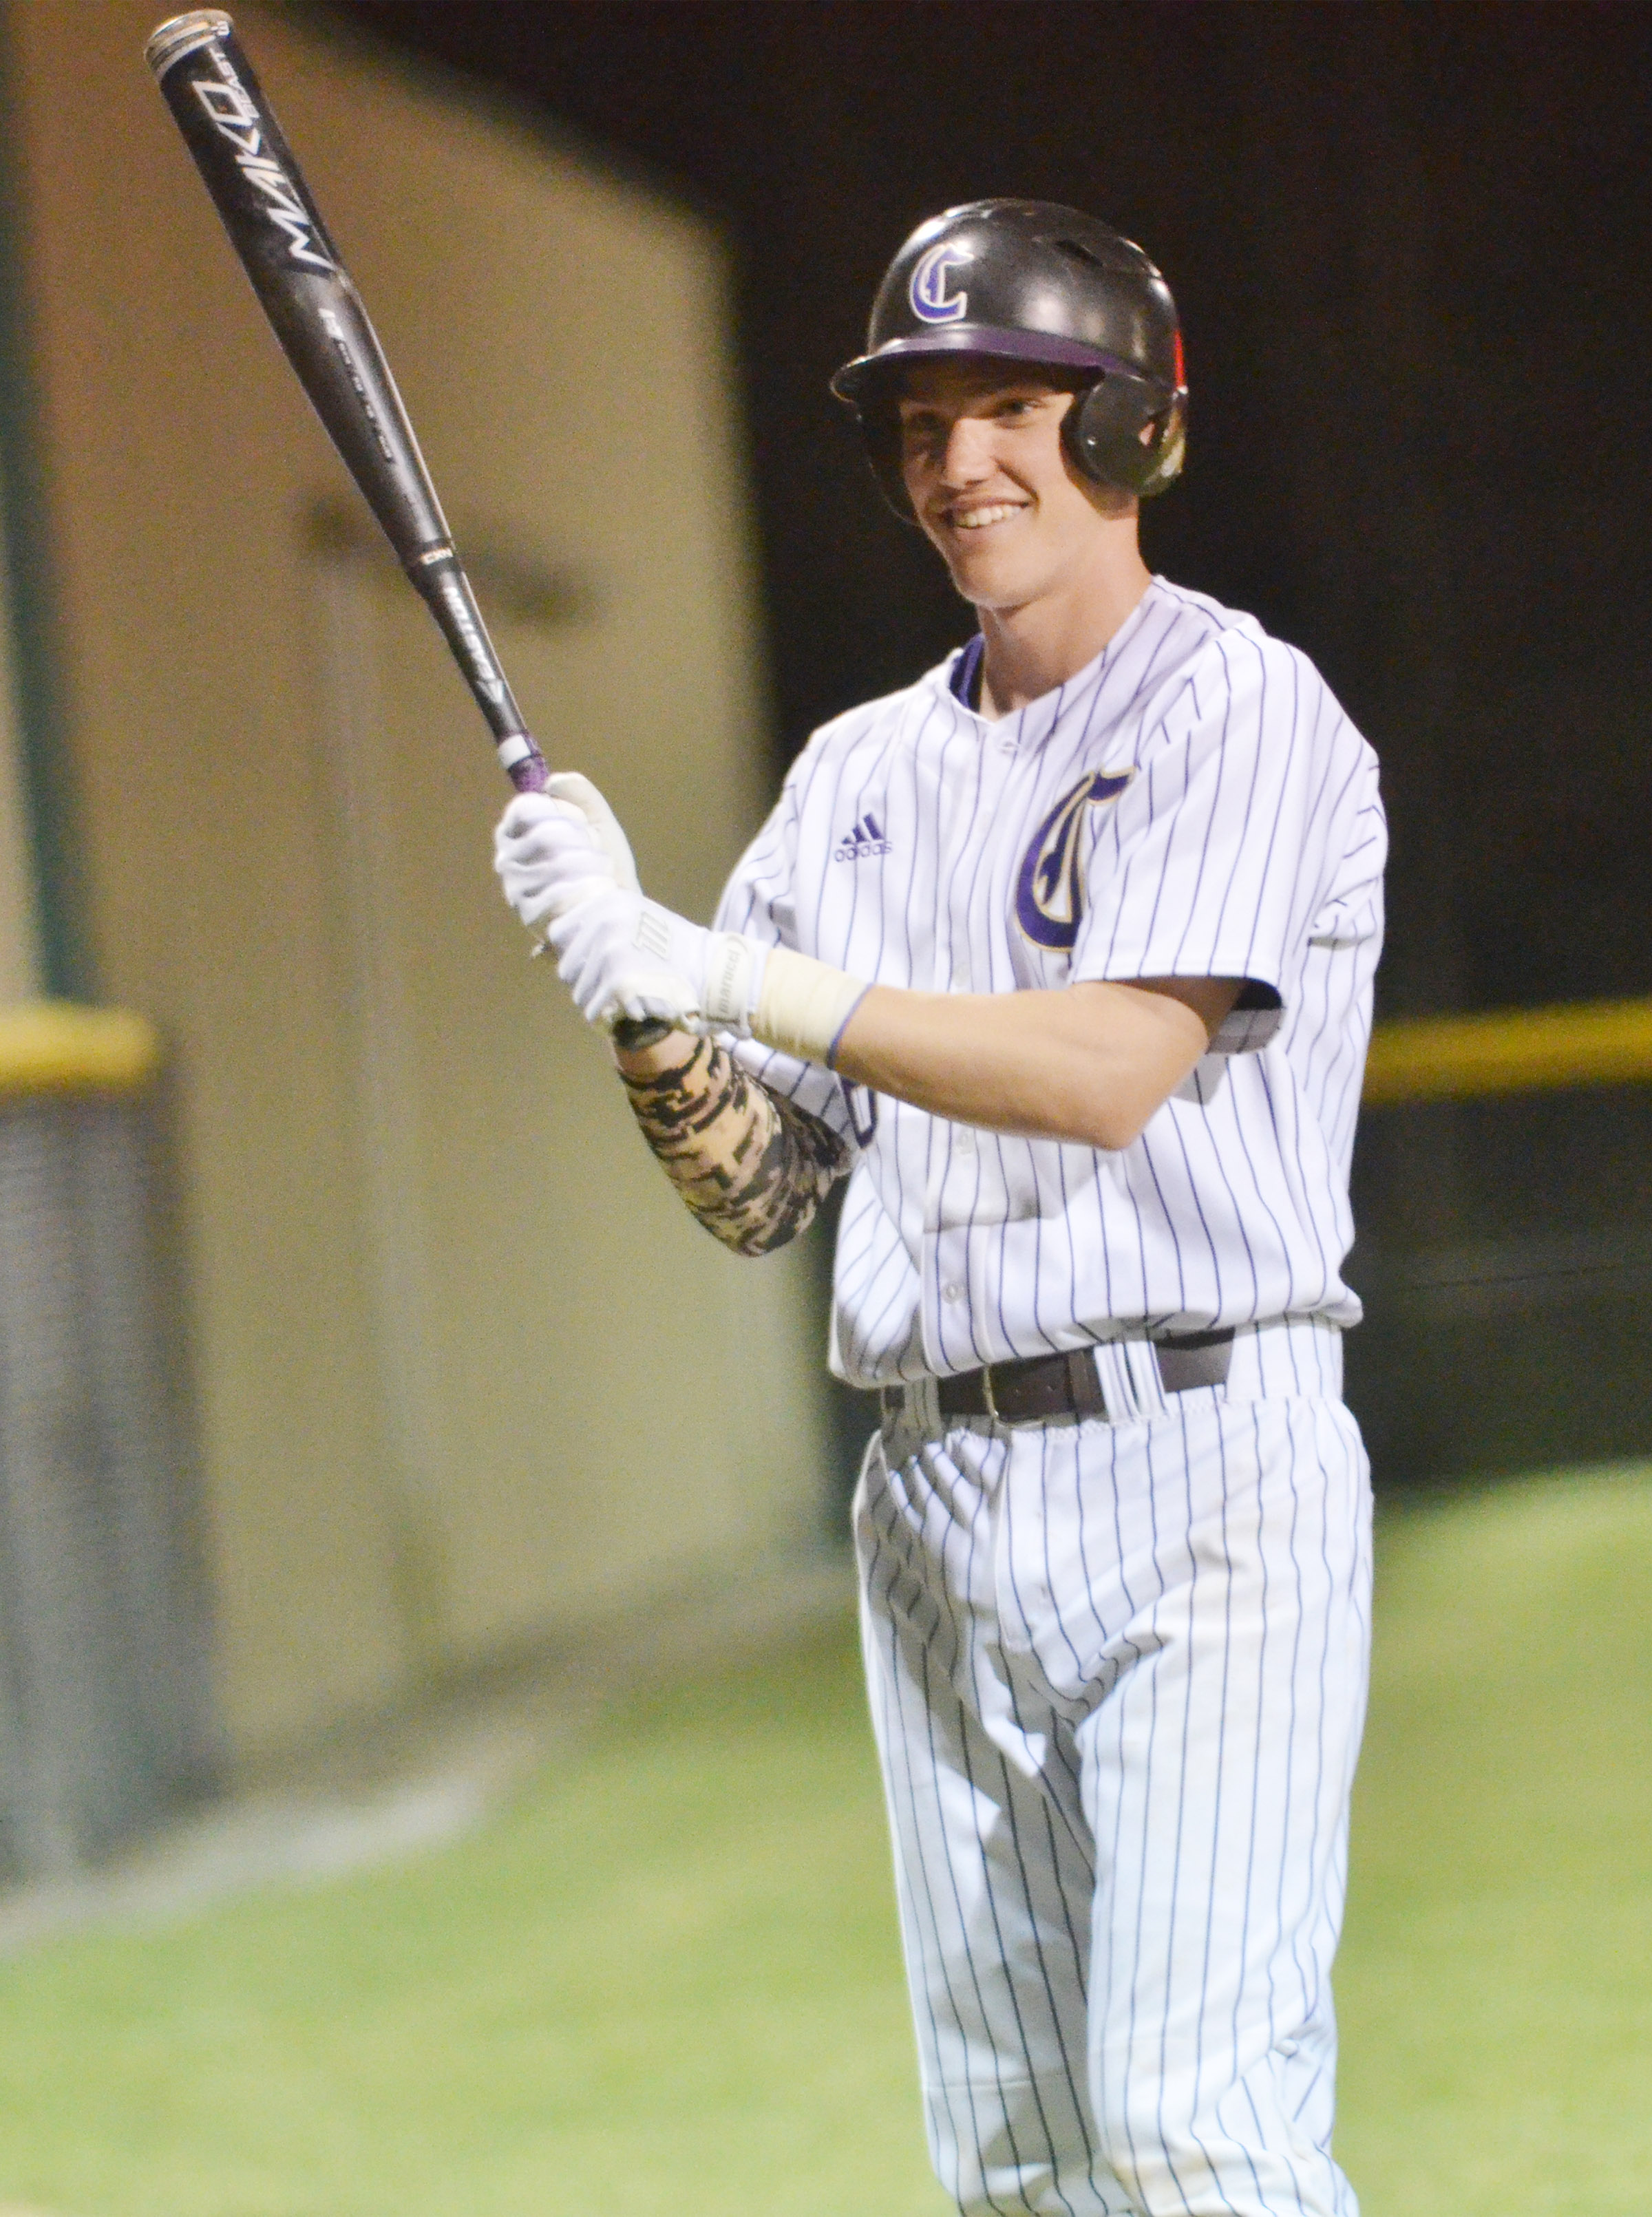 CHS senior Zack Bottoms gets ready to bat.